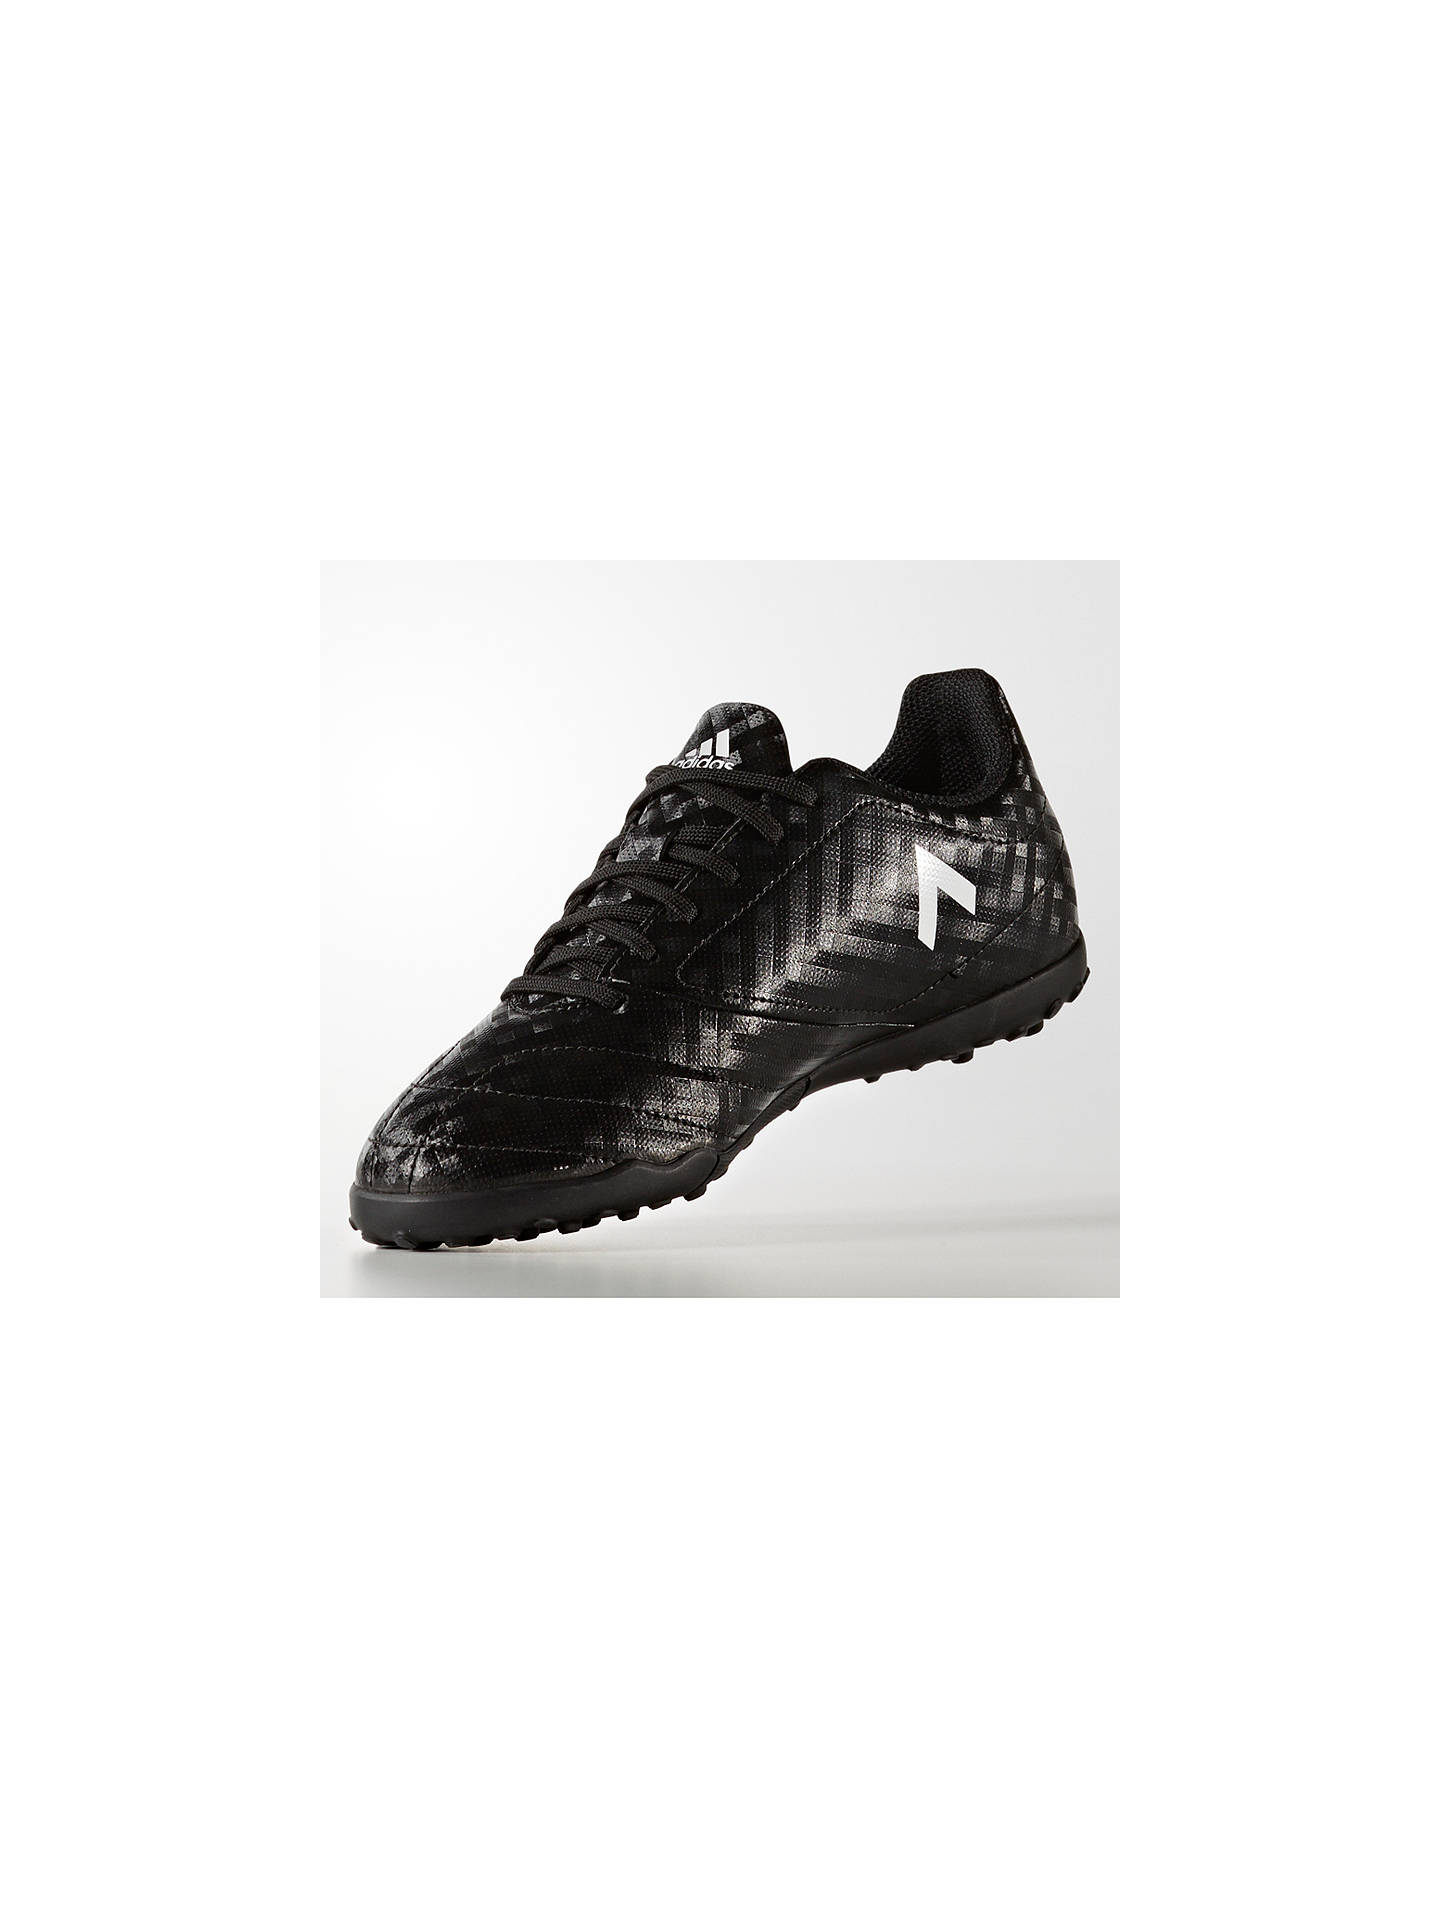 new products 0fceb fa7bb adidas Children's Ace 17.4 TF Football Boots, Black at John ...